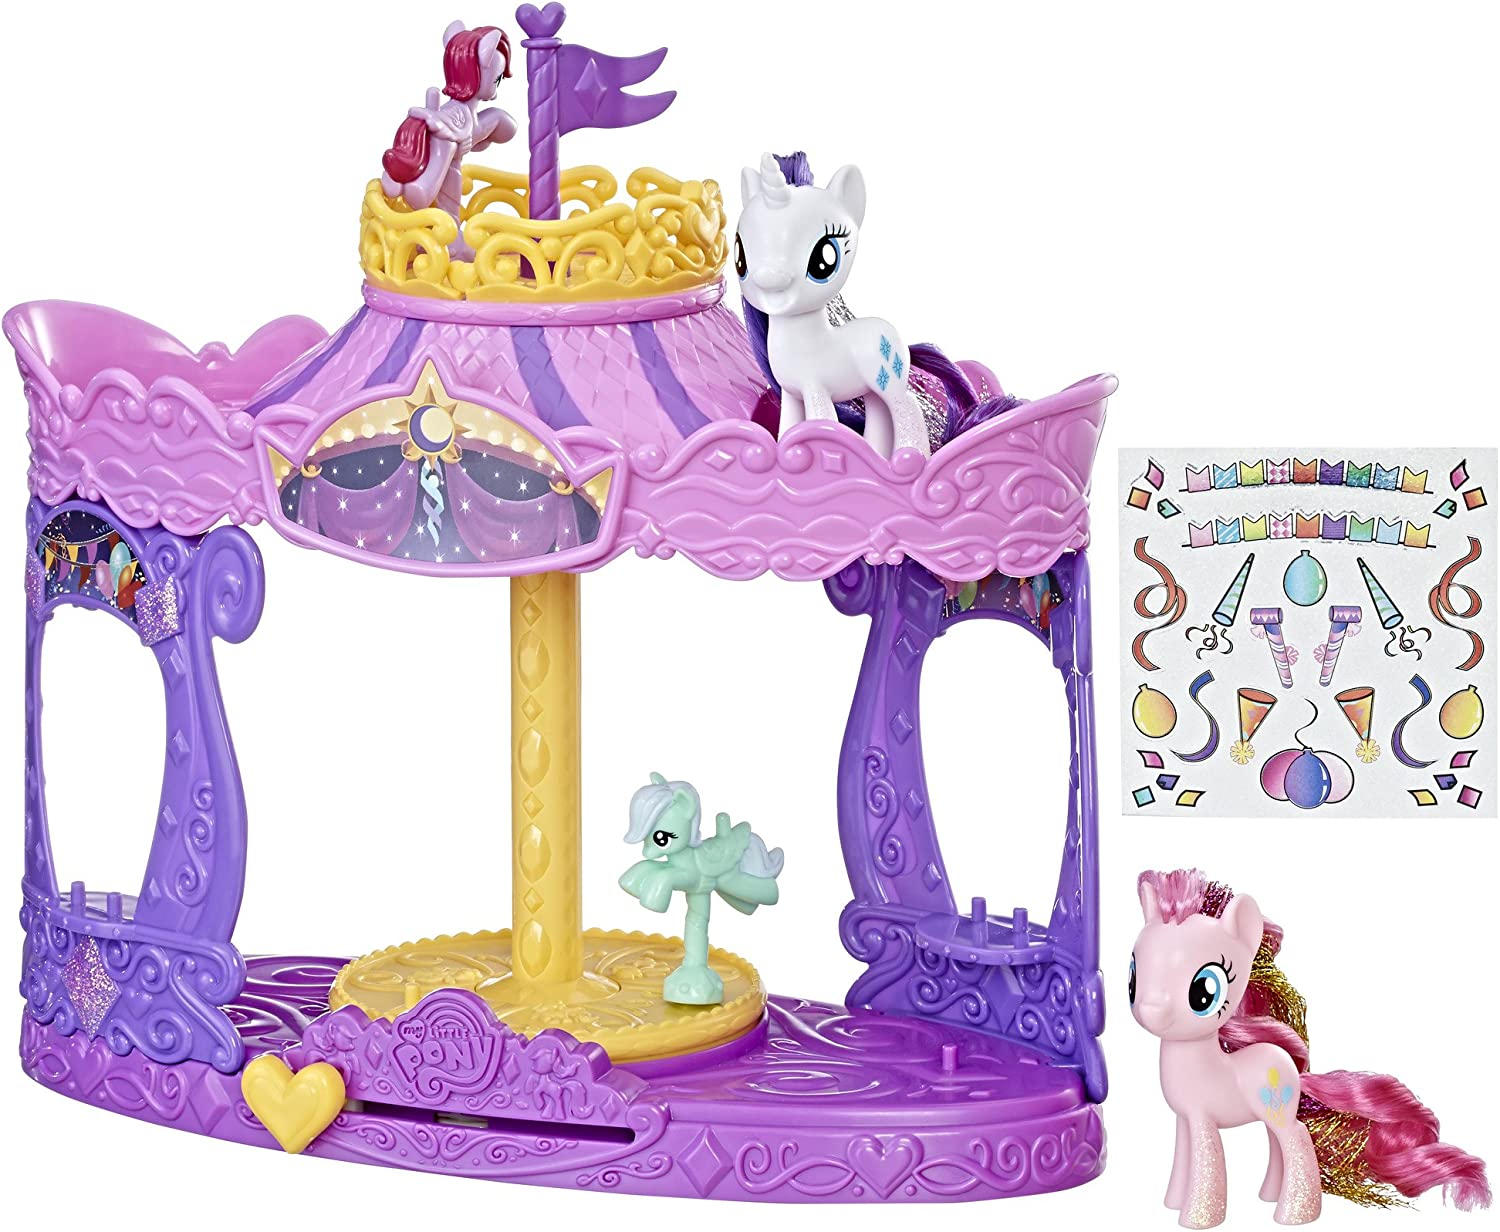 My Little Pony Musical Carousel with Pinkie Pie and Rarity 3-inch Pony Toys, Kids Ages 3 and Up (Amazon Exclusive)